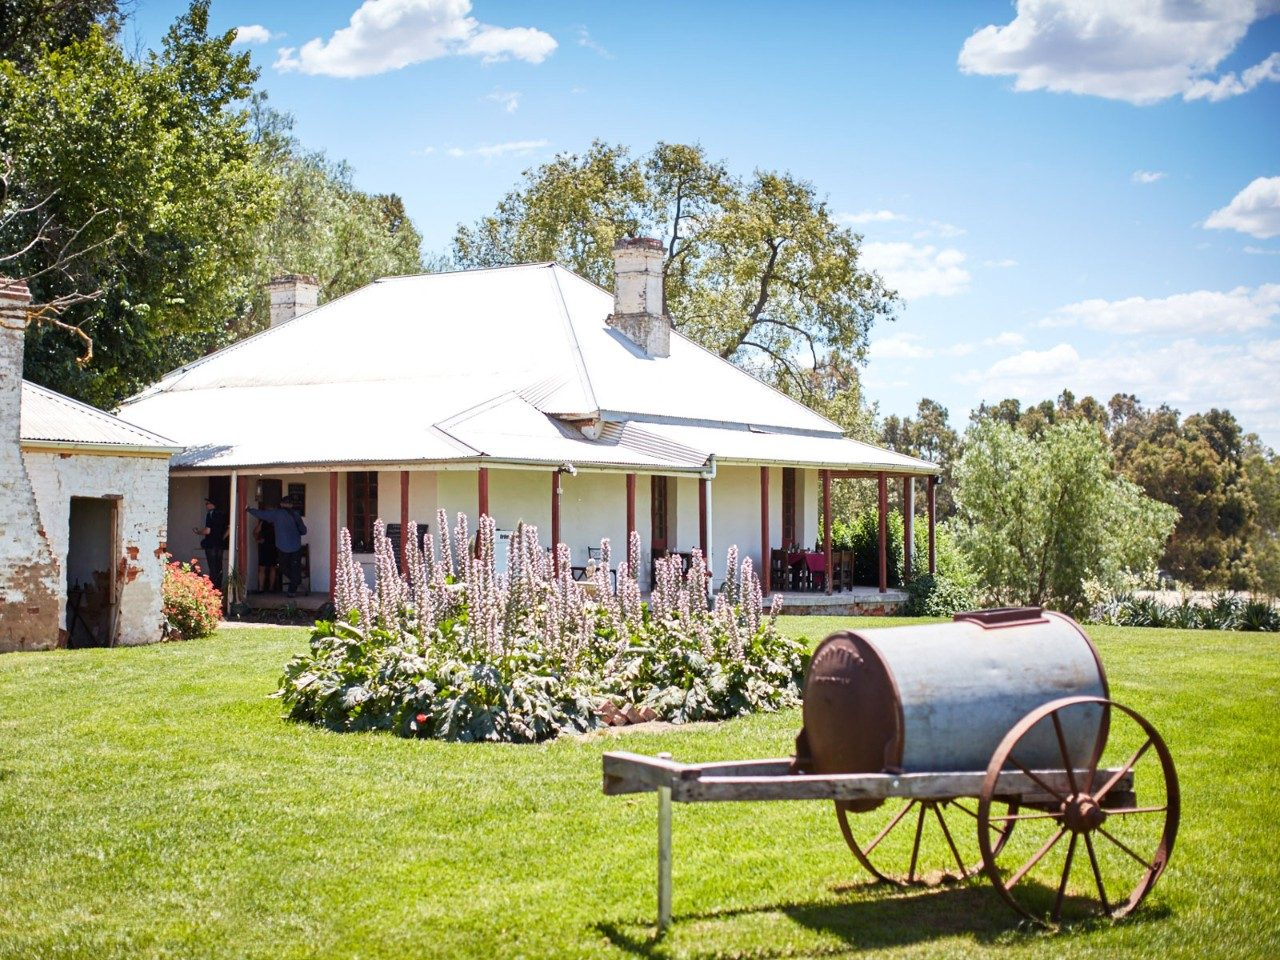 6 Historic Australian Houses You Can Visit Travel Insider